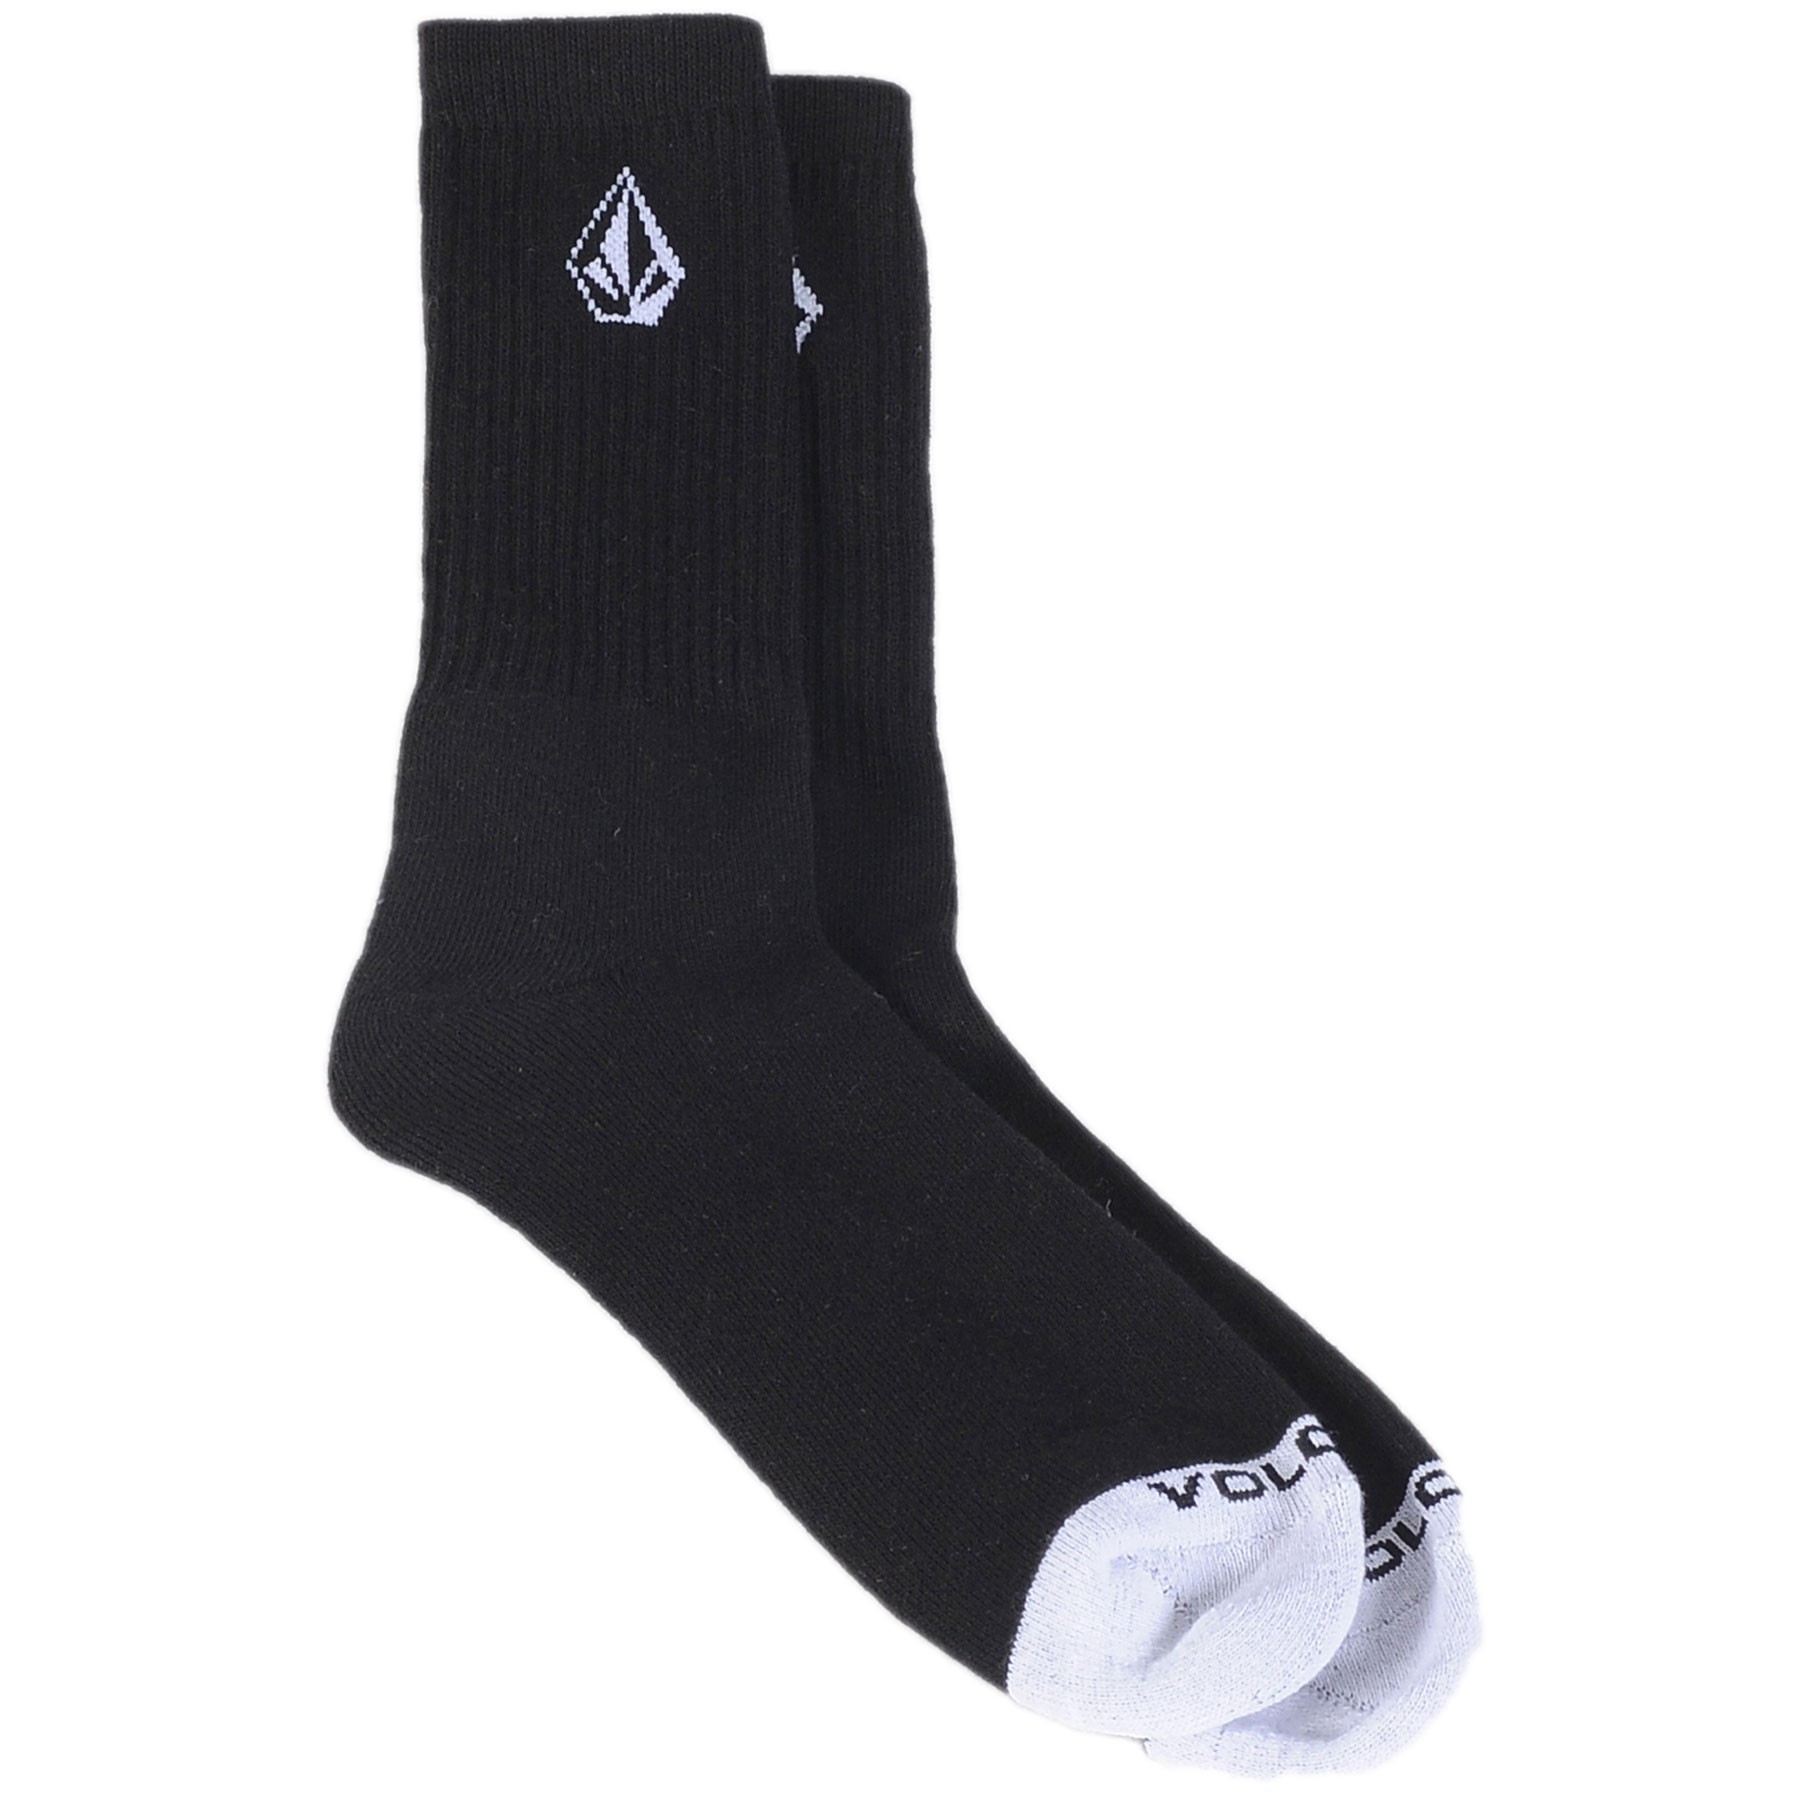 Socks With Stone Logo In Black - Black Volcom